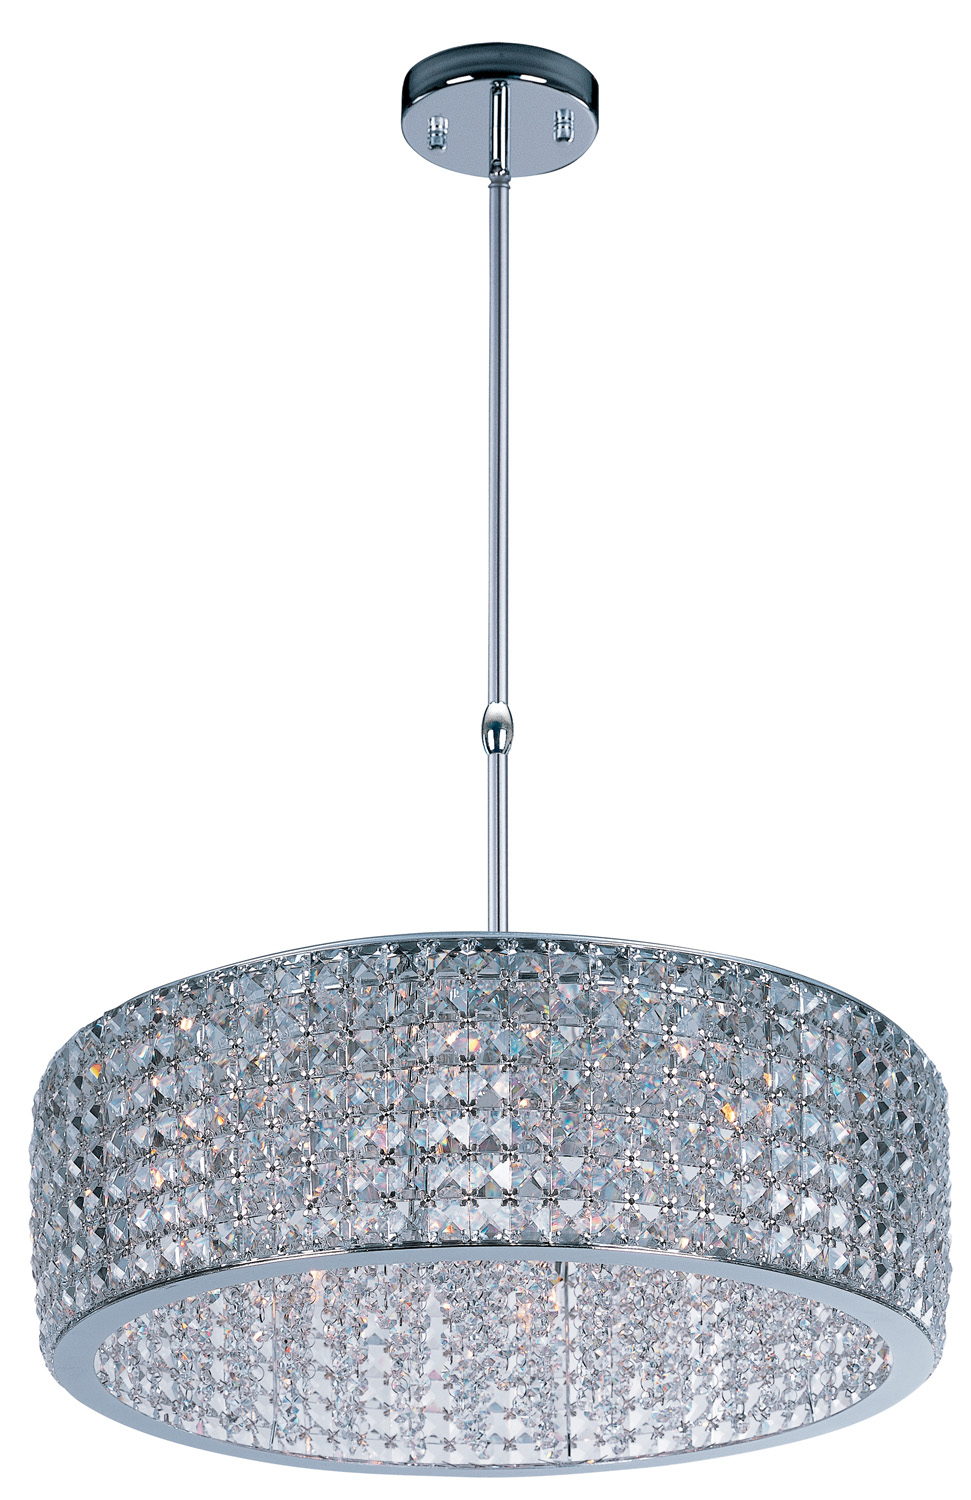 12 Light Pendant from the Vision collection by Maxim 39935BCPC